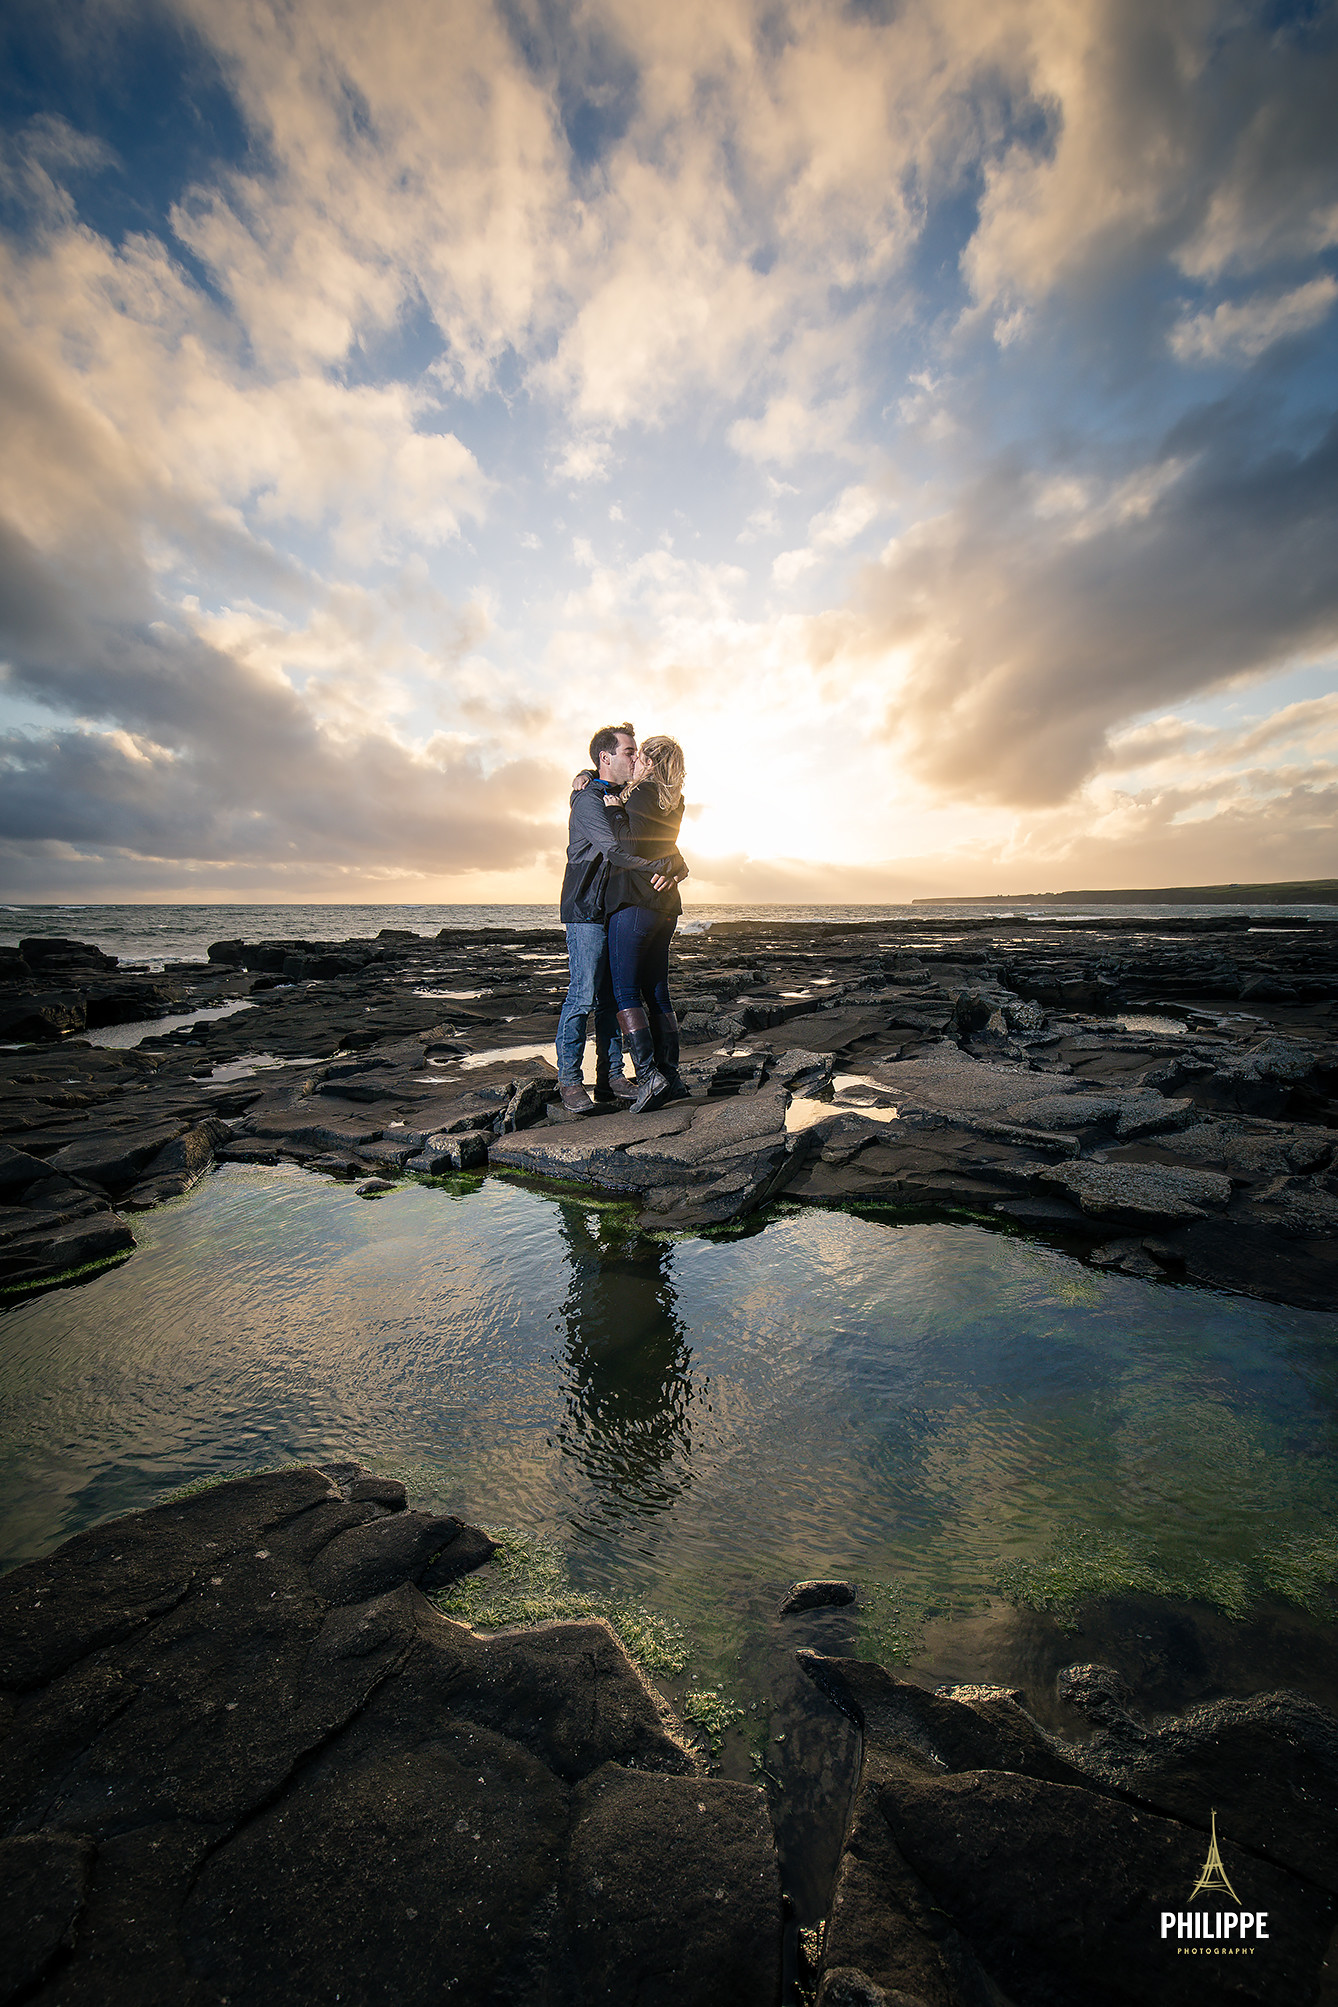 wedding-photography-clare-ireland-philippe-engagement-kylekileen17